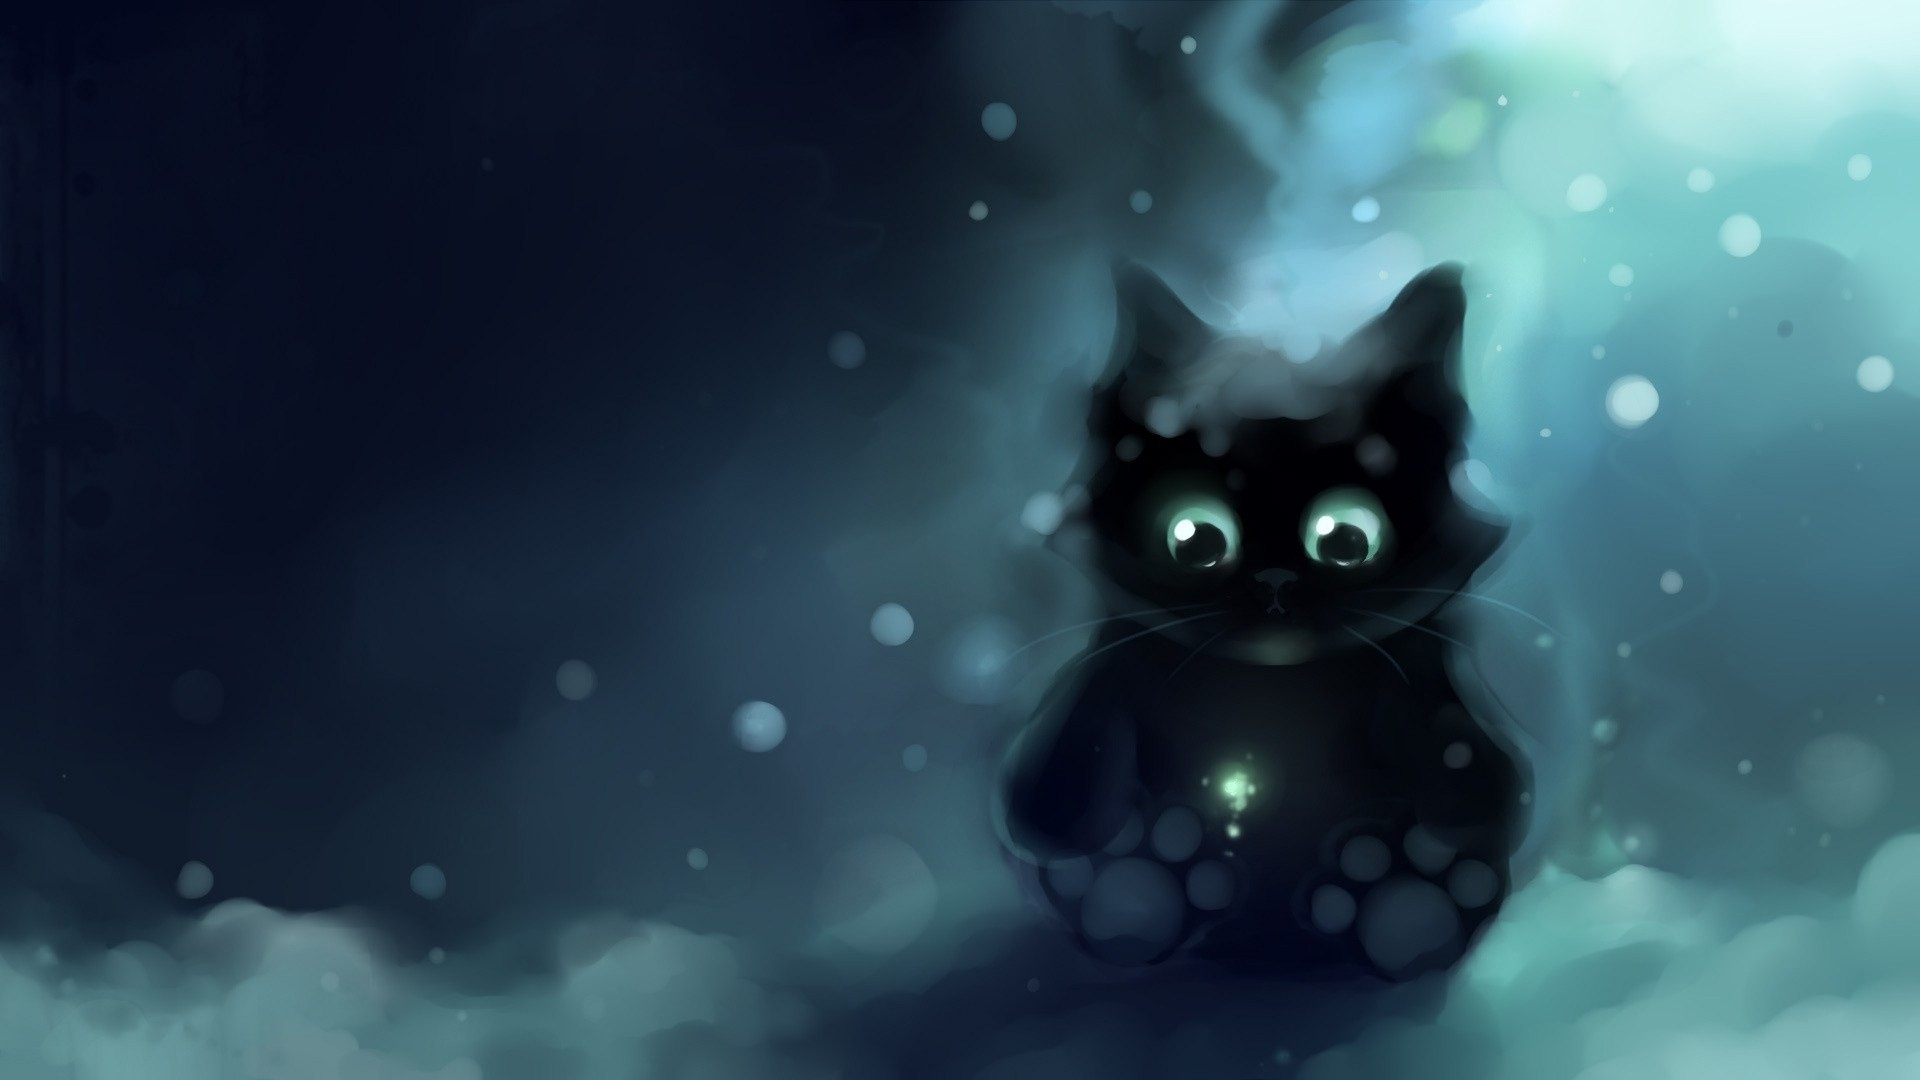 Awesome Black Cat Wallpaper